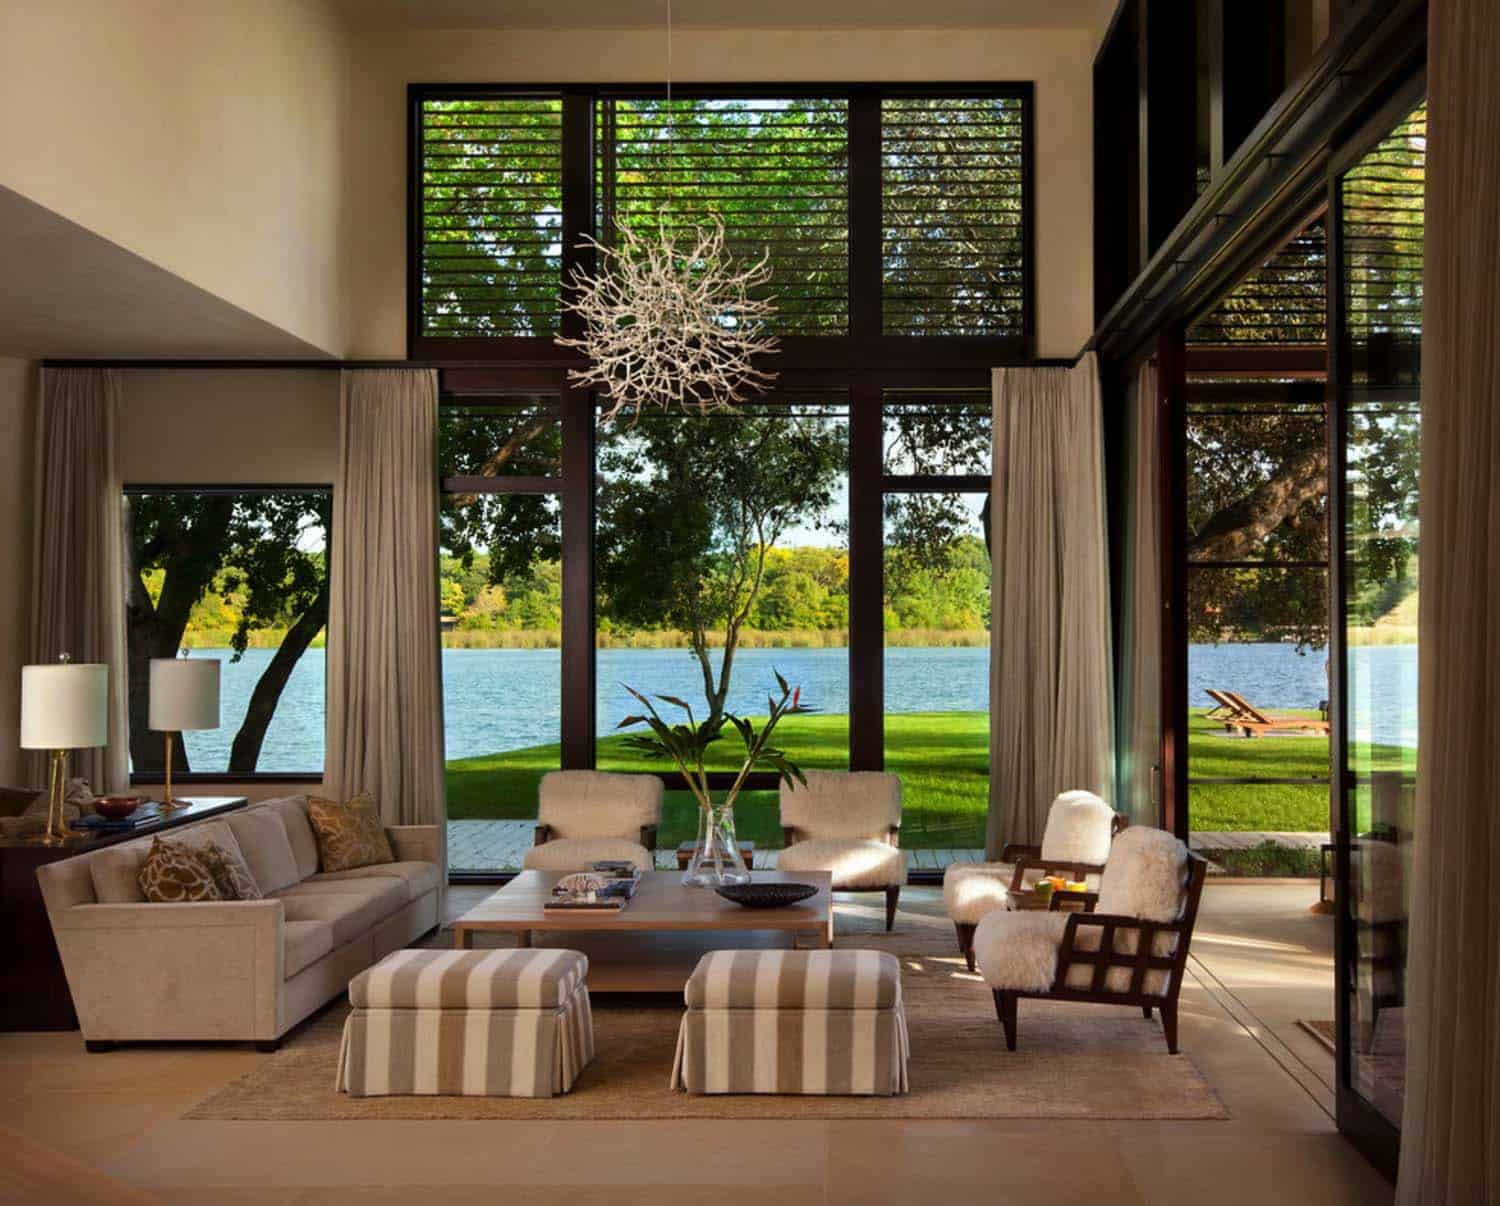 Contemporary Lake House Renovation-Furman Keil Architects-01-1 Kindesign